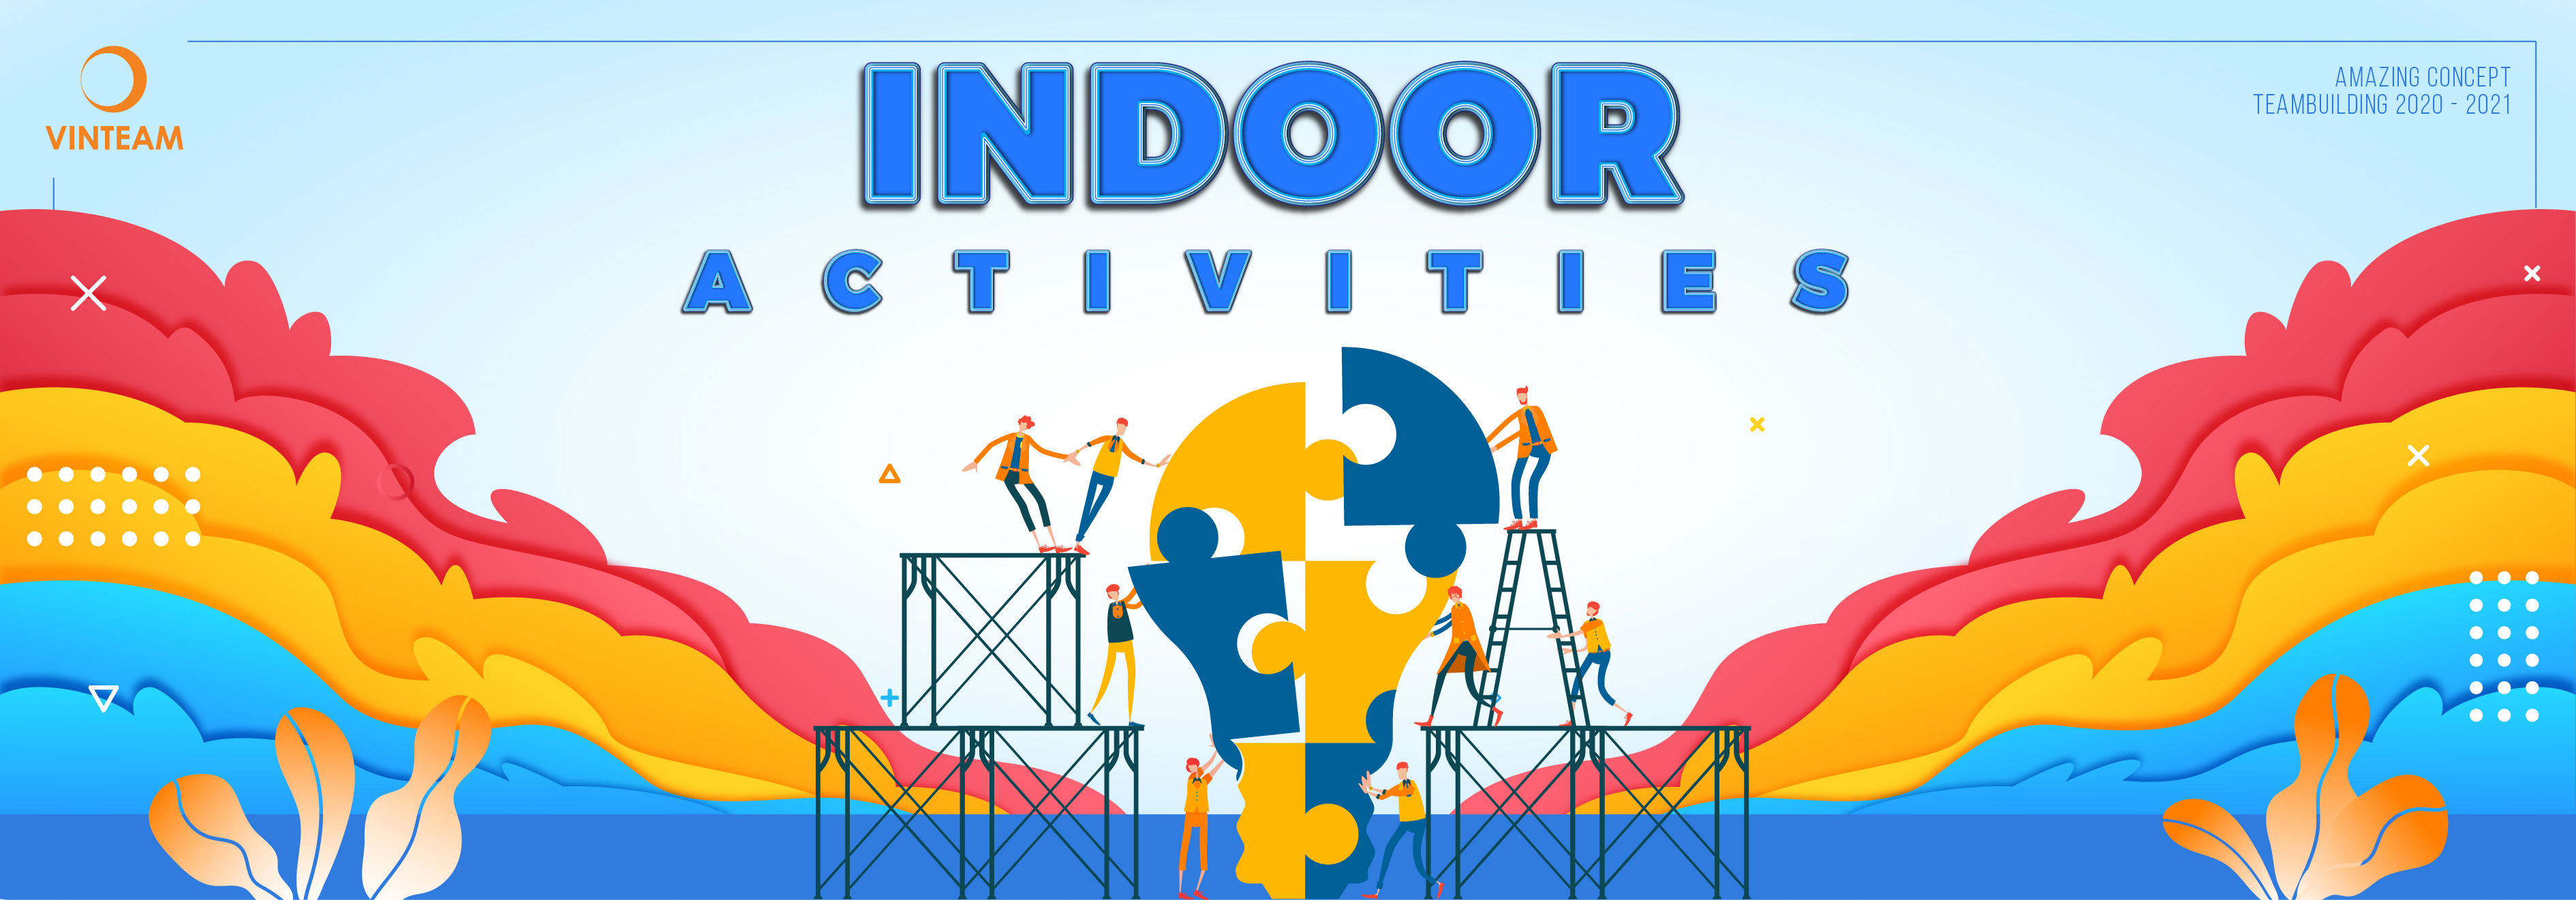 10.-cover-INDOOR-ACTIVITIES-01